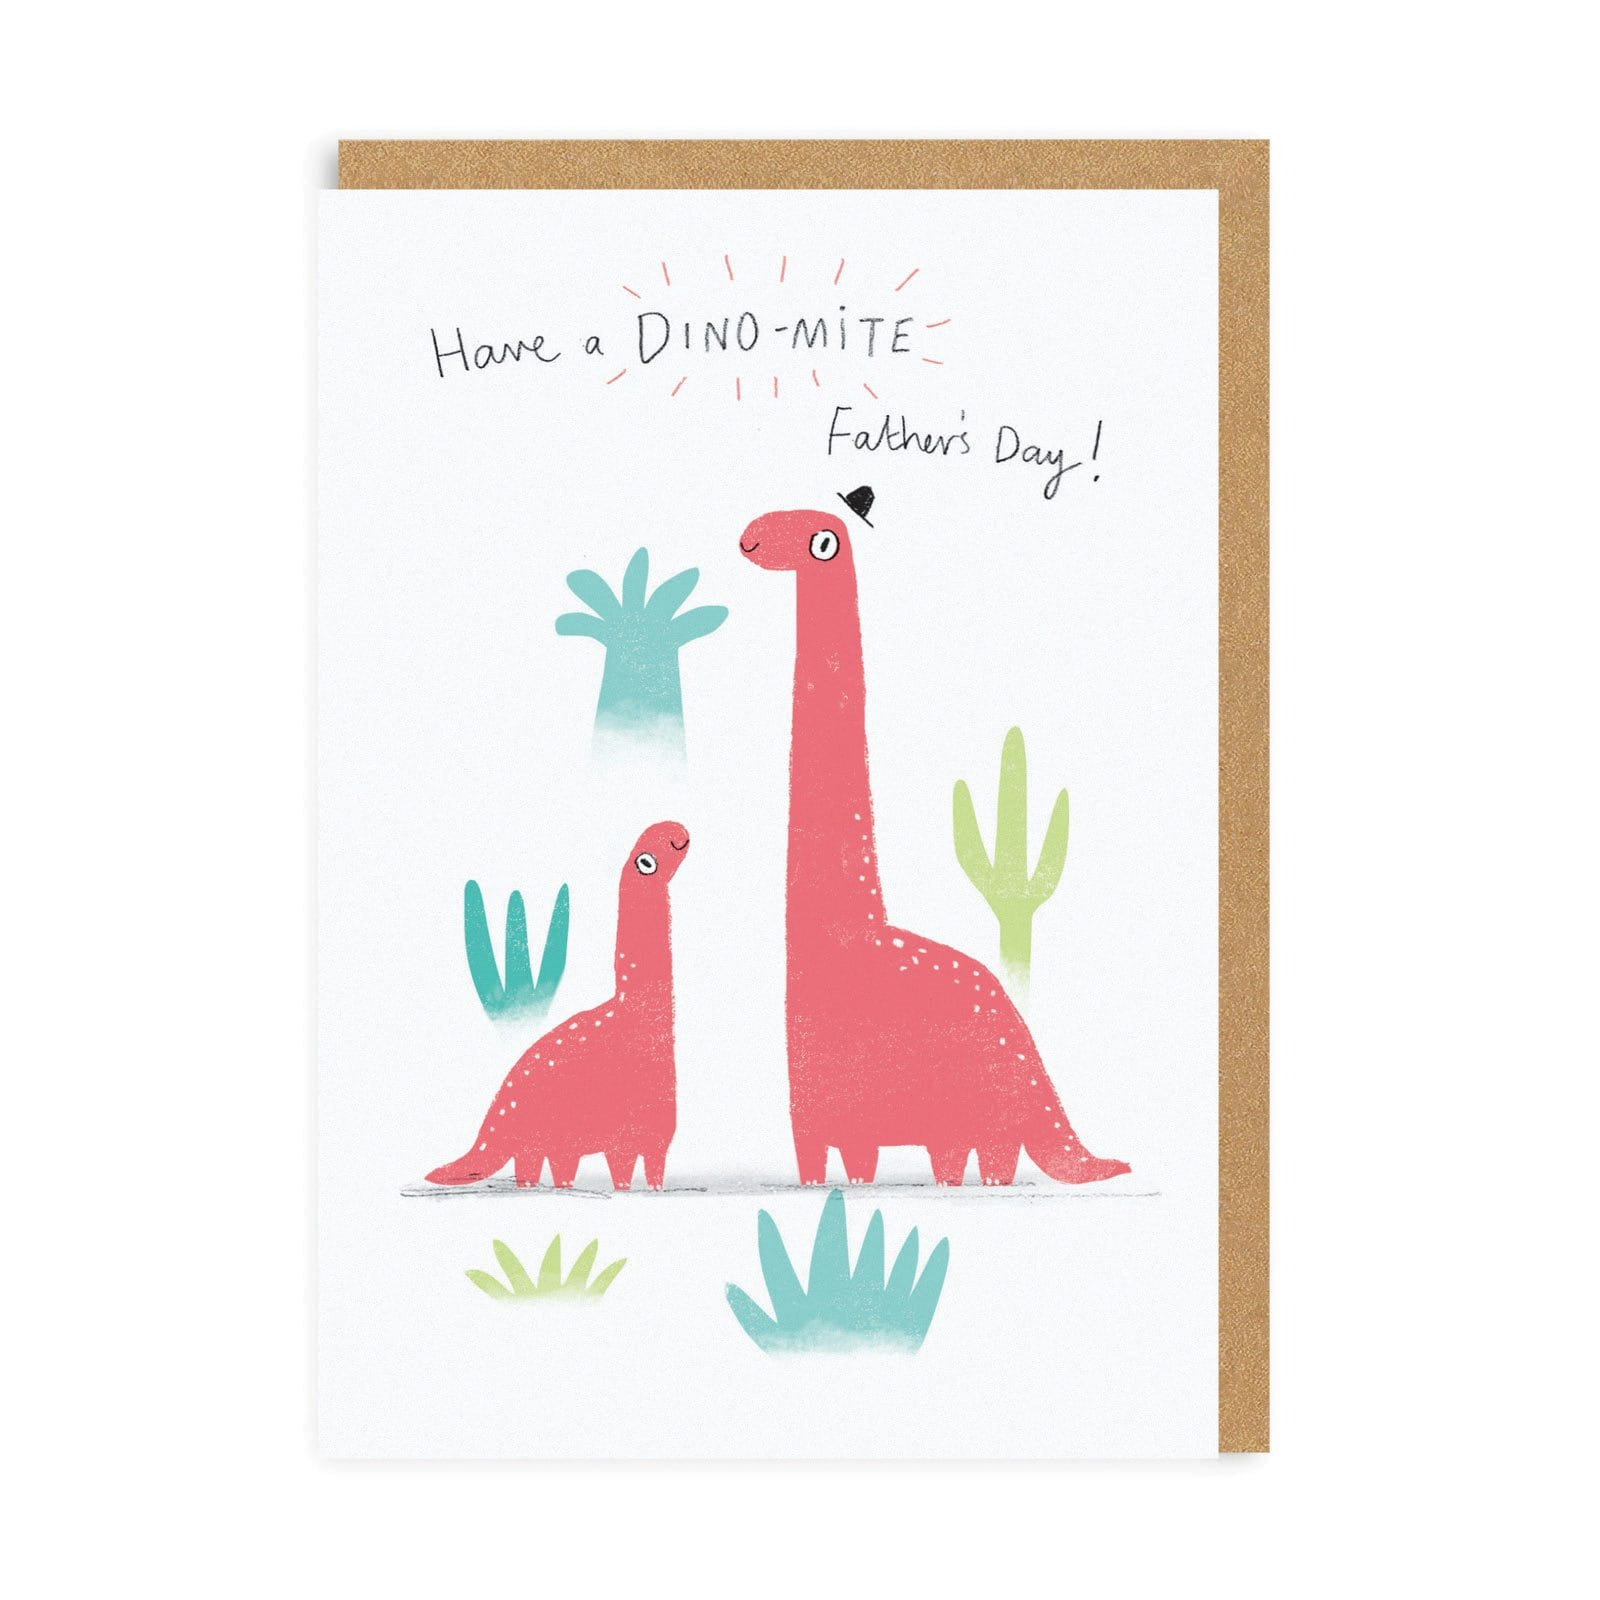 Dino-mite Father's Day Greeting Card